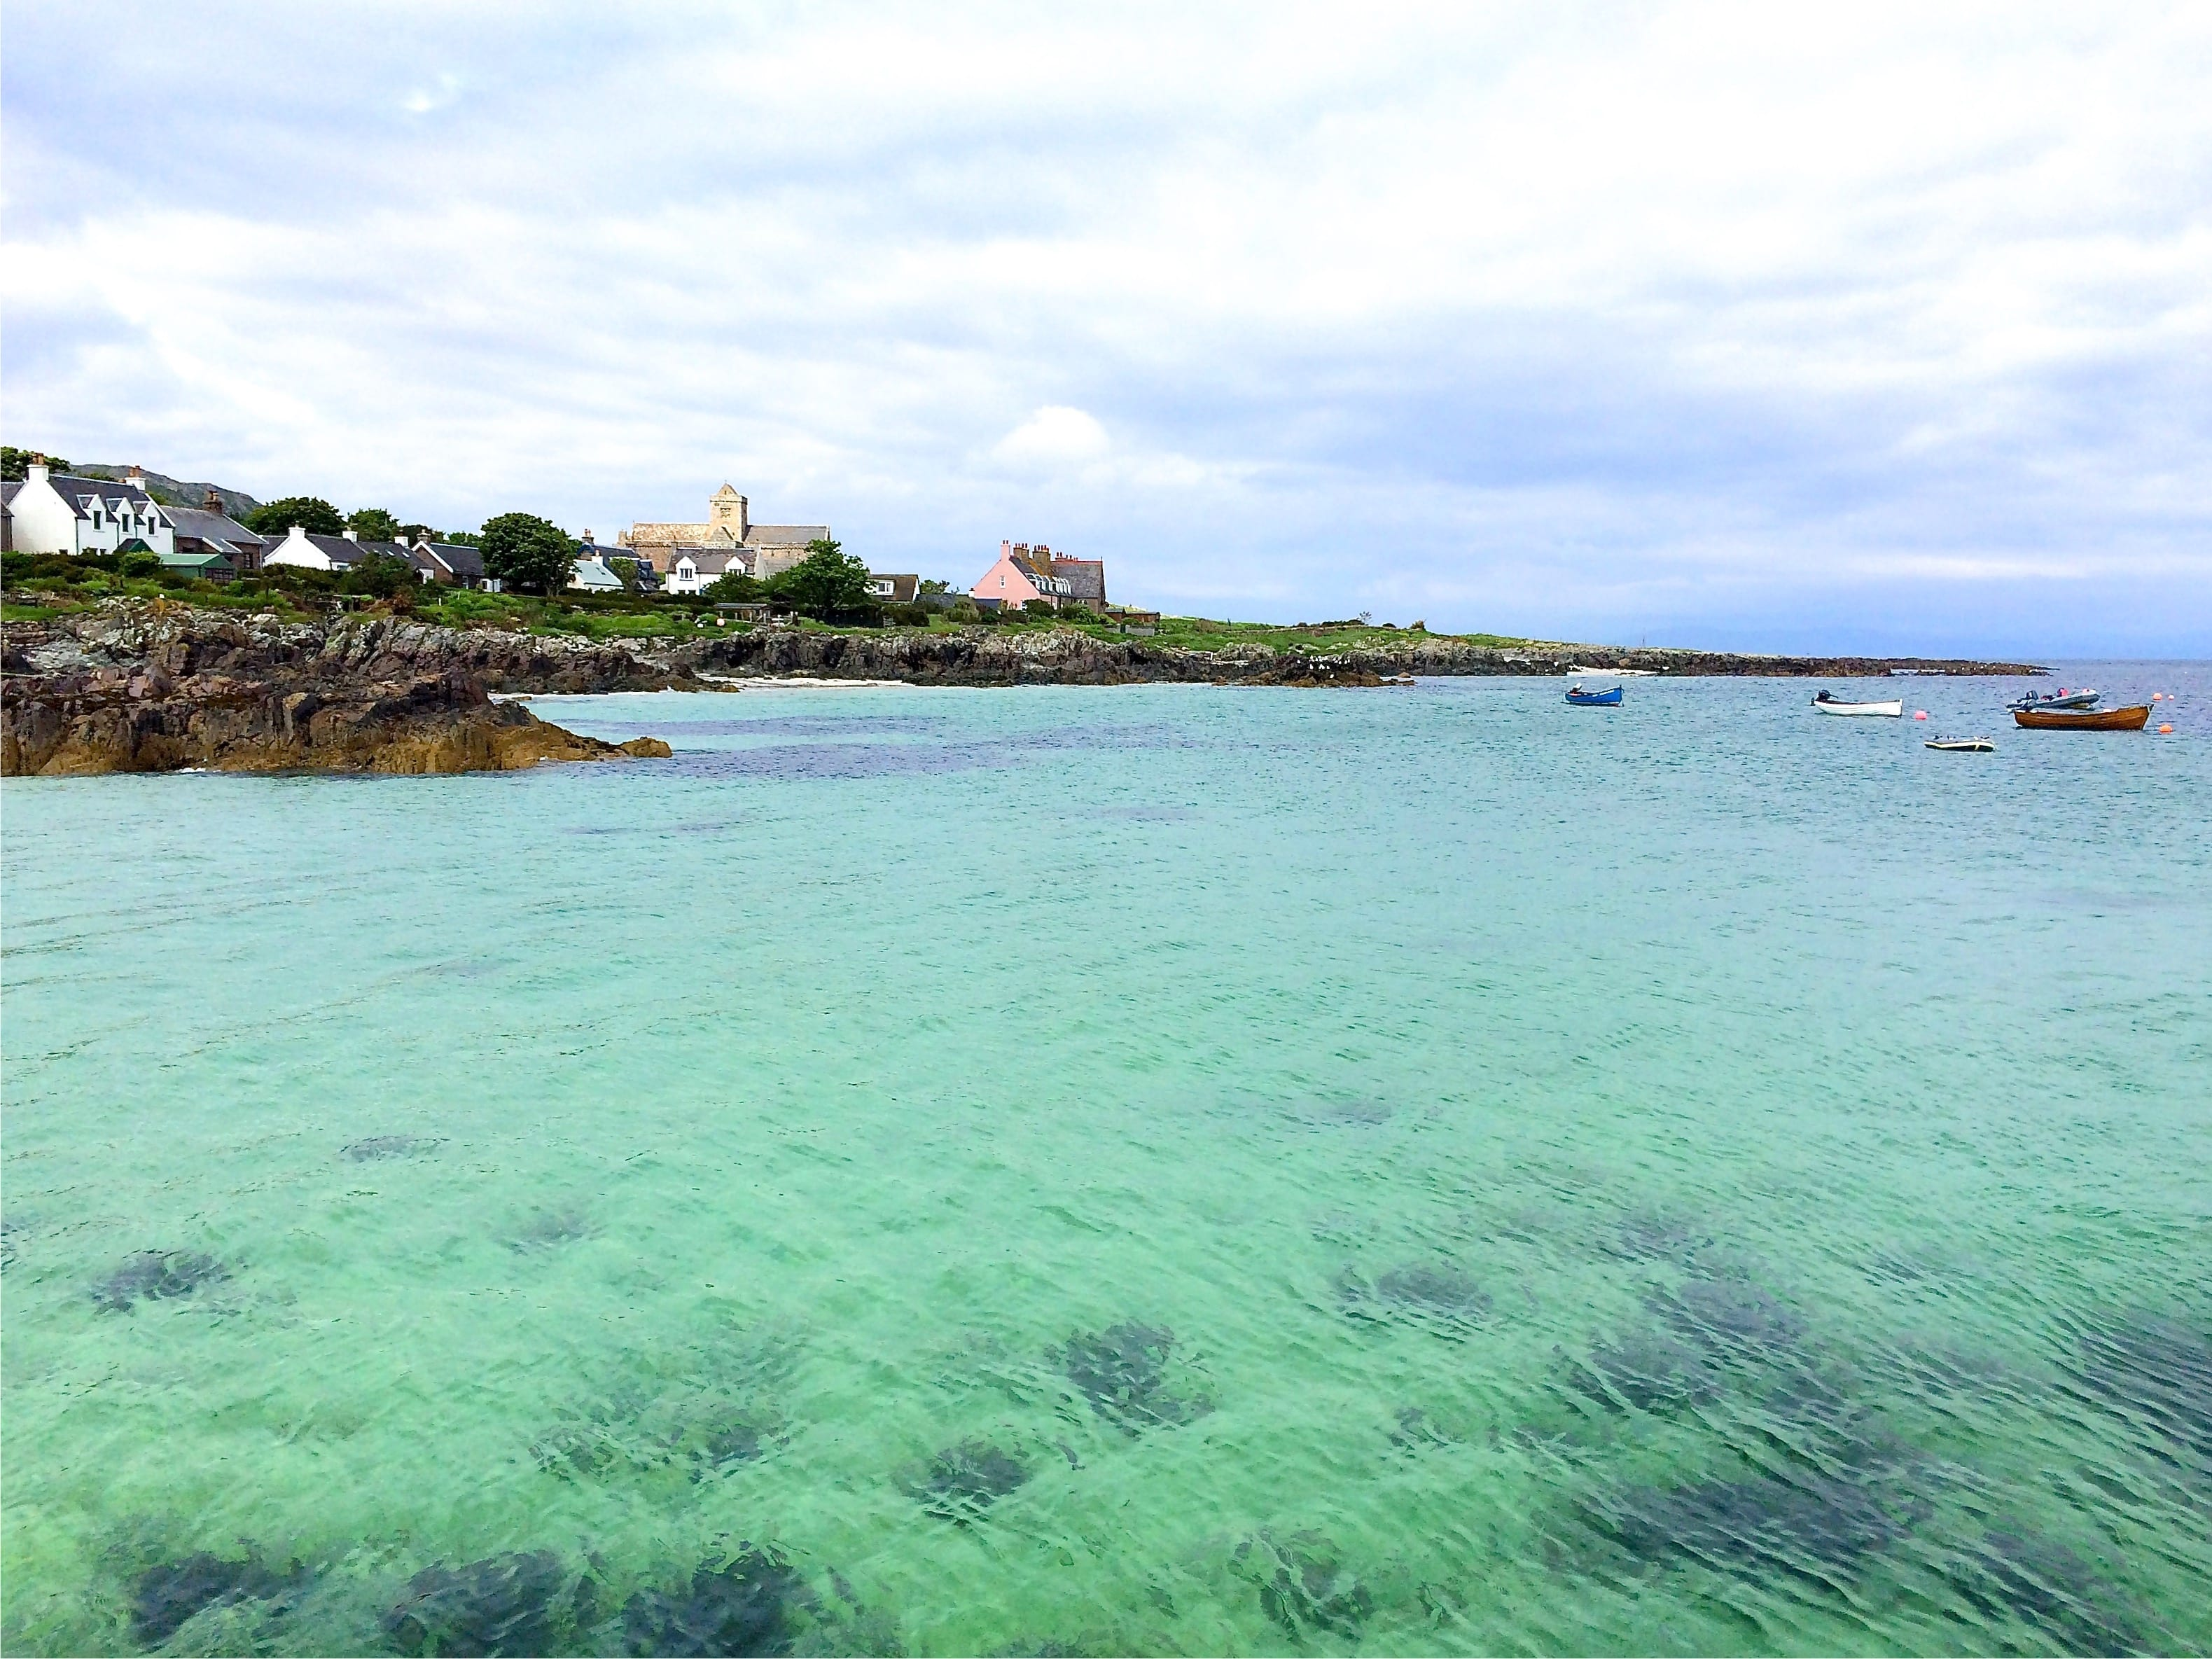 Shallow water at Iona on the west coast of Scotland